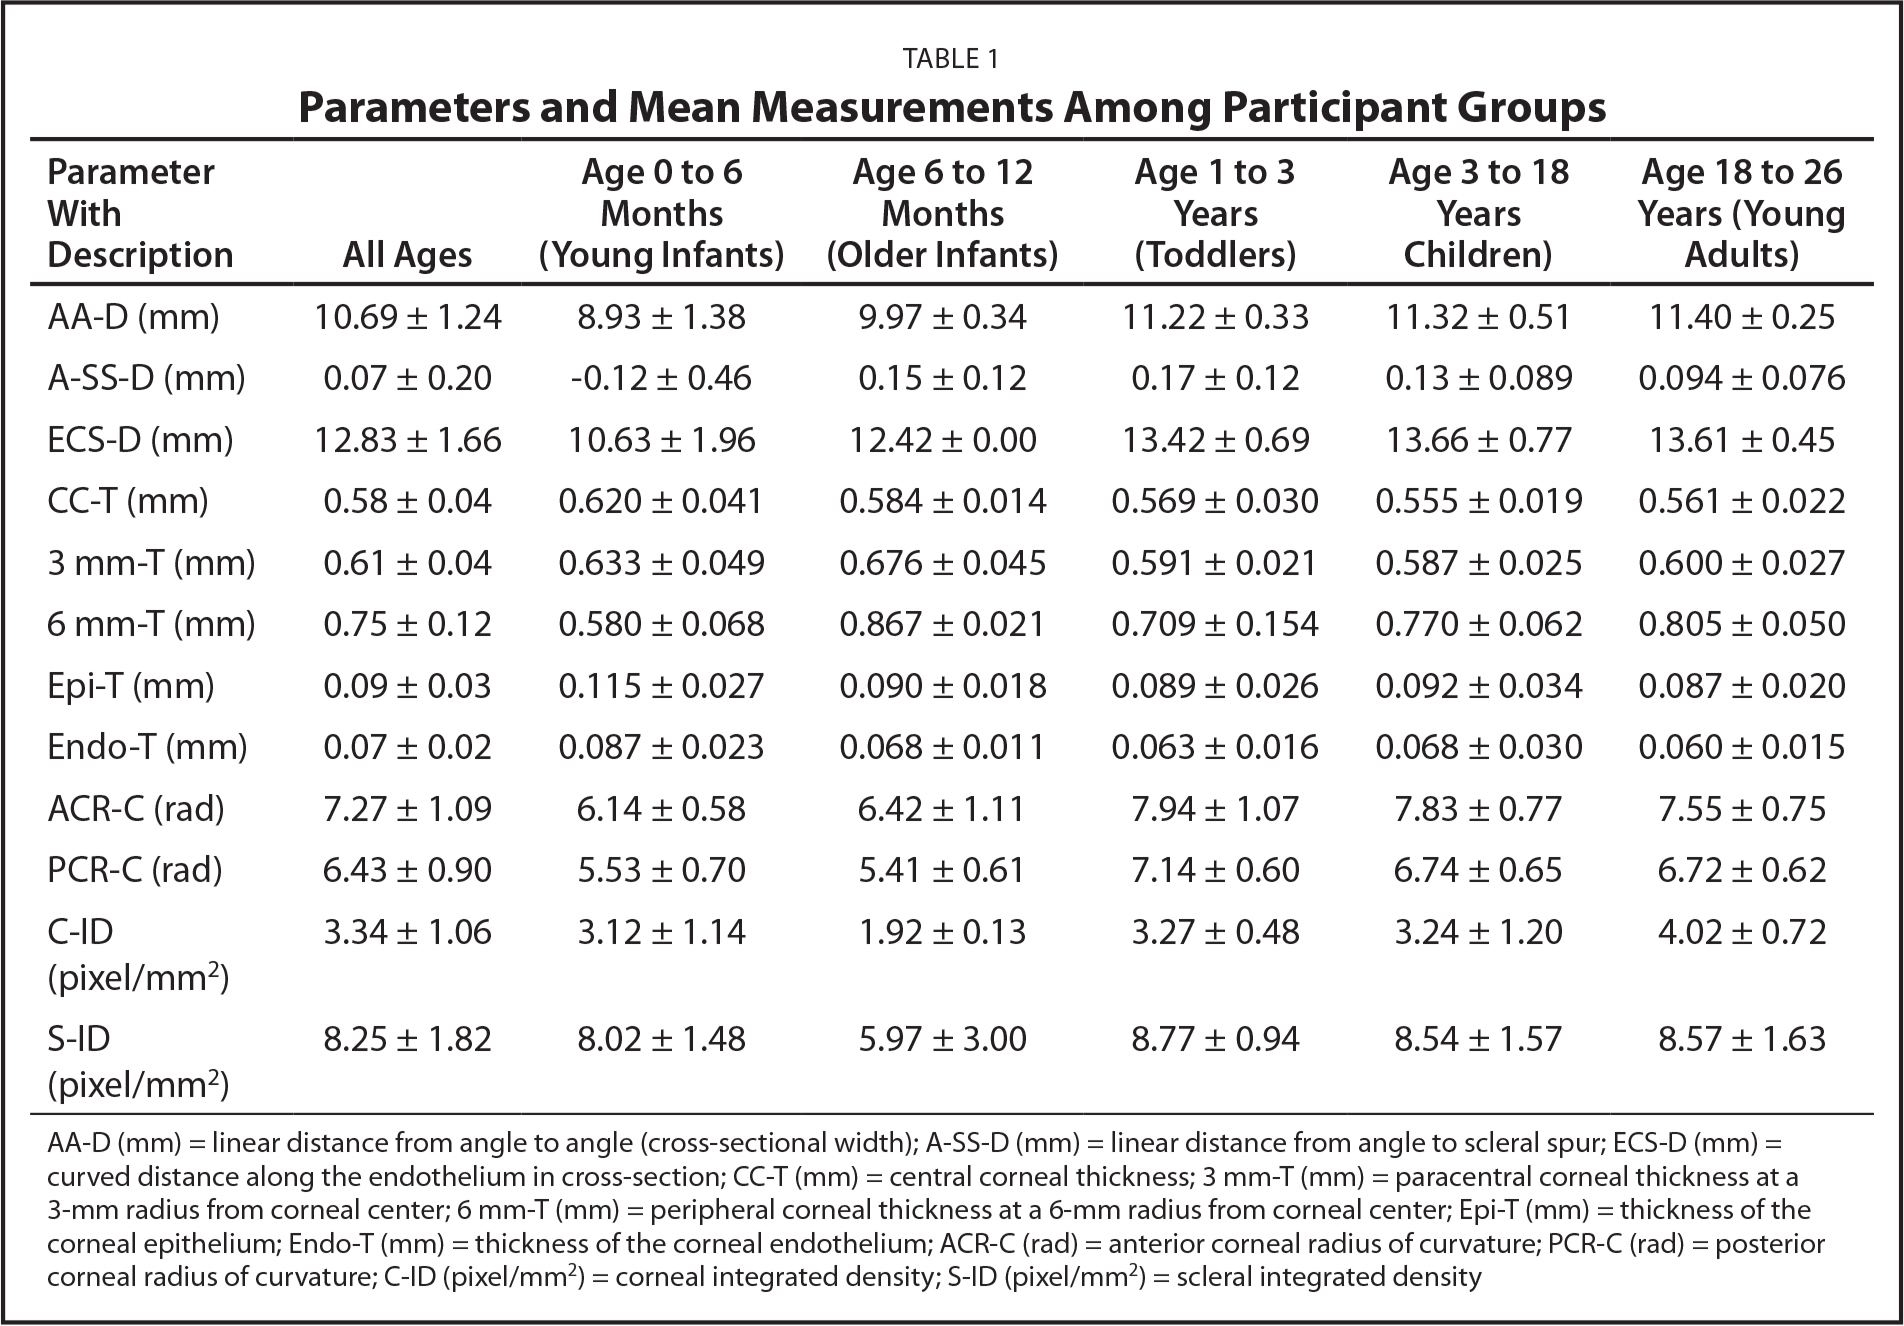 Parameters and Mean Measurements Among Participant Groups